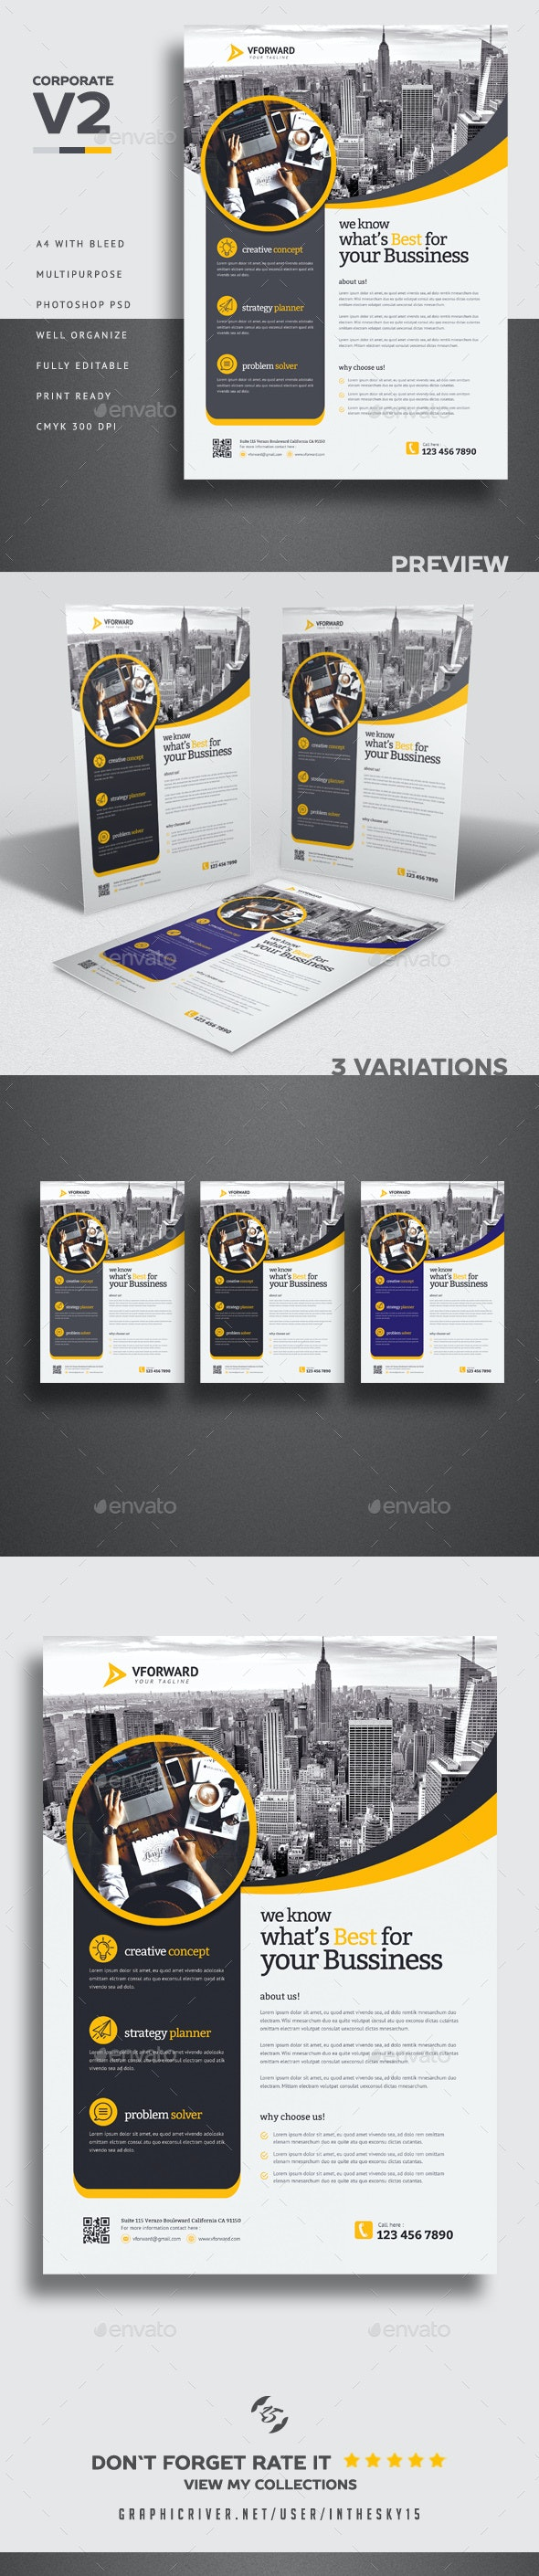 Corporate V2 Flyer - Corporate Business Cards